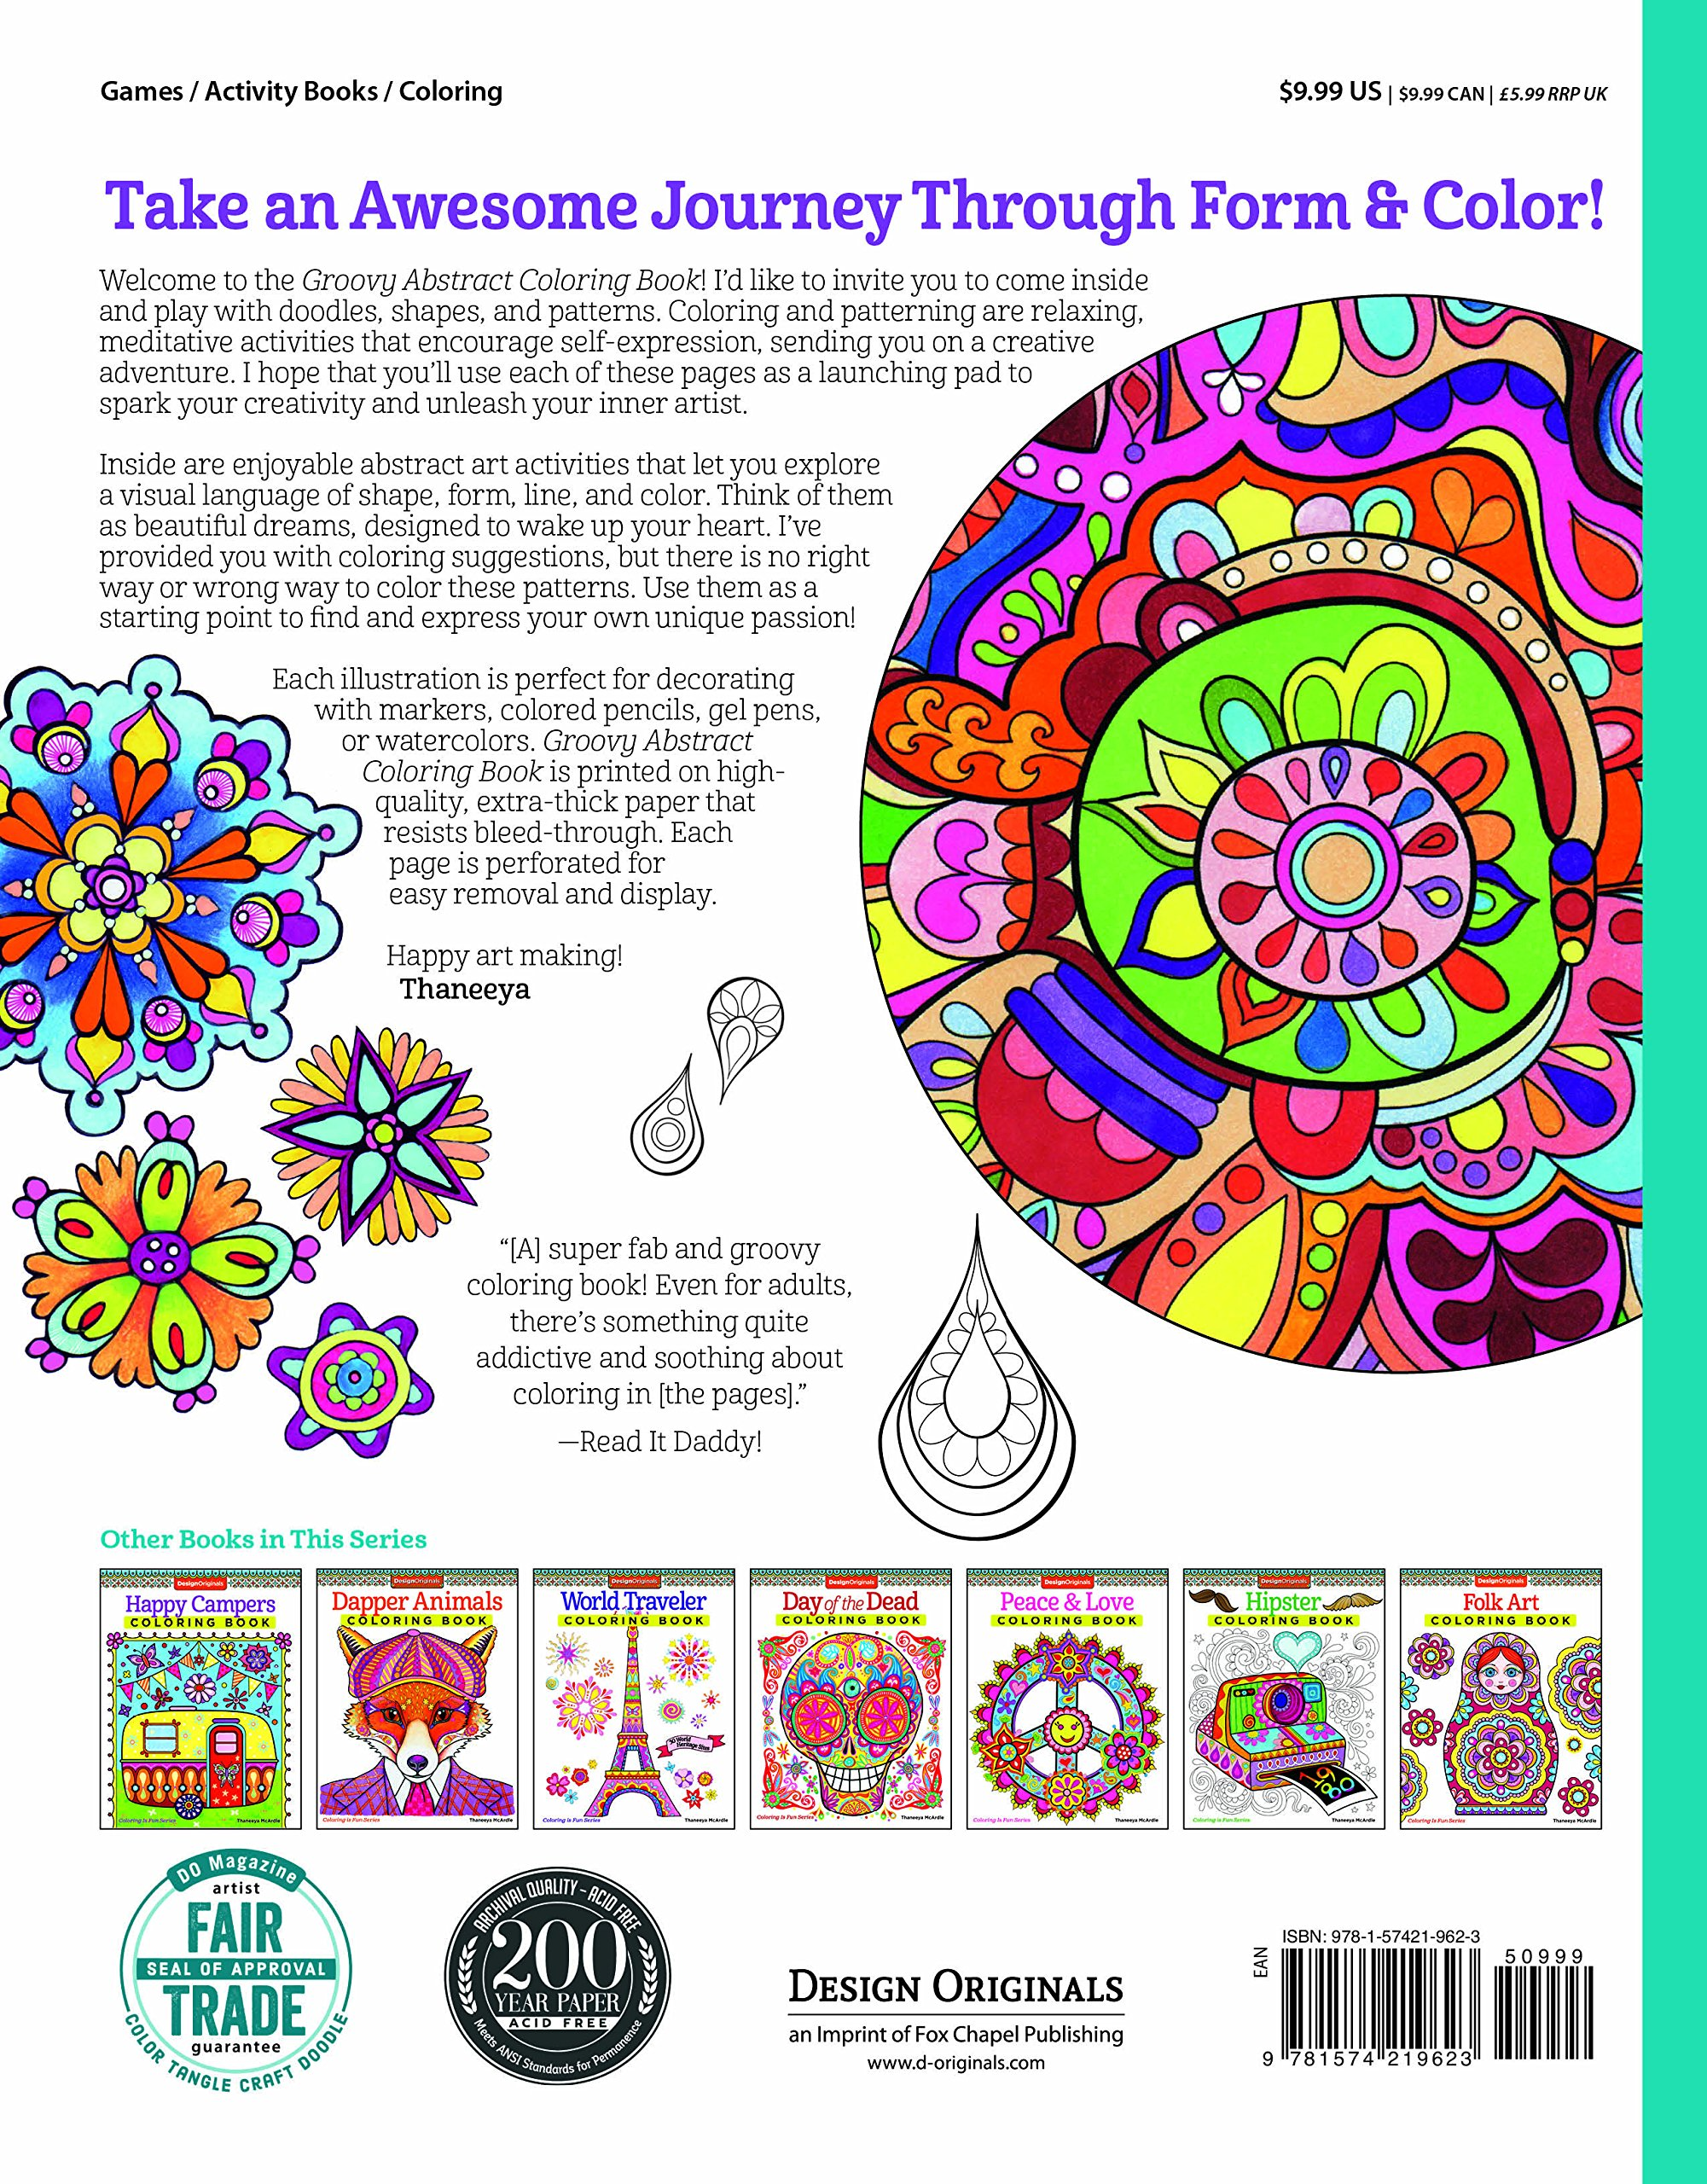 Amazon Groovy Abstract Coloring Book Design Originals Is Fun 9781574219623 Thaneeya McArdle Books